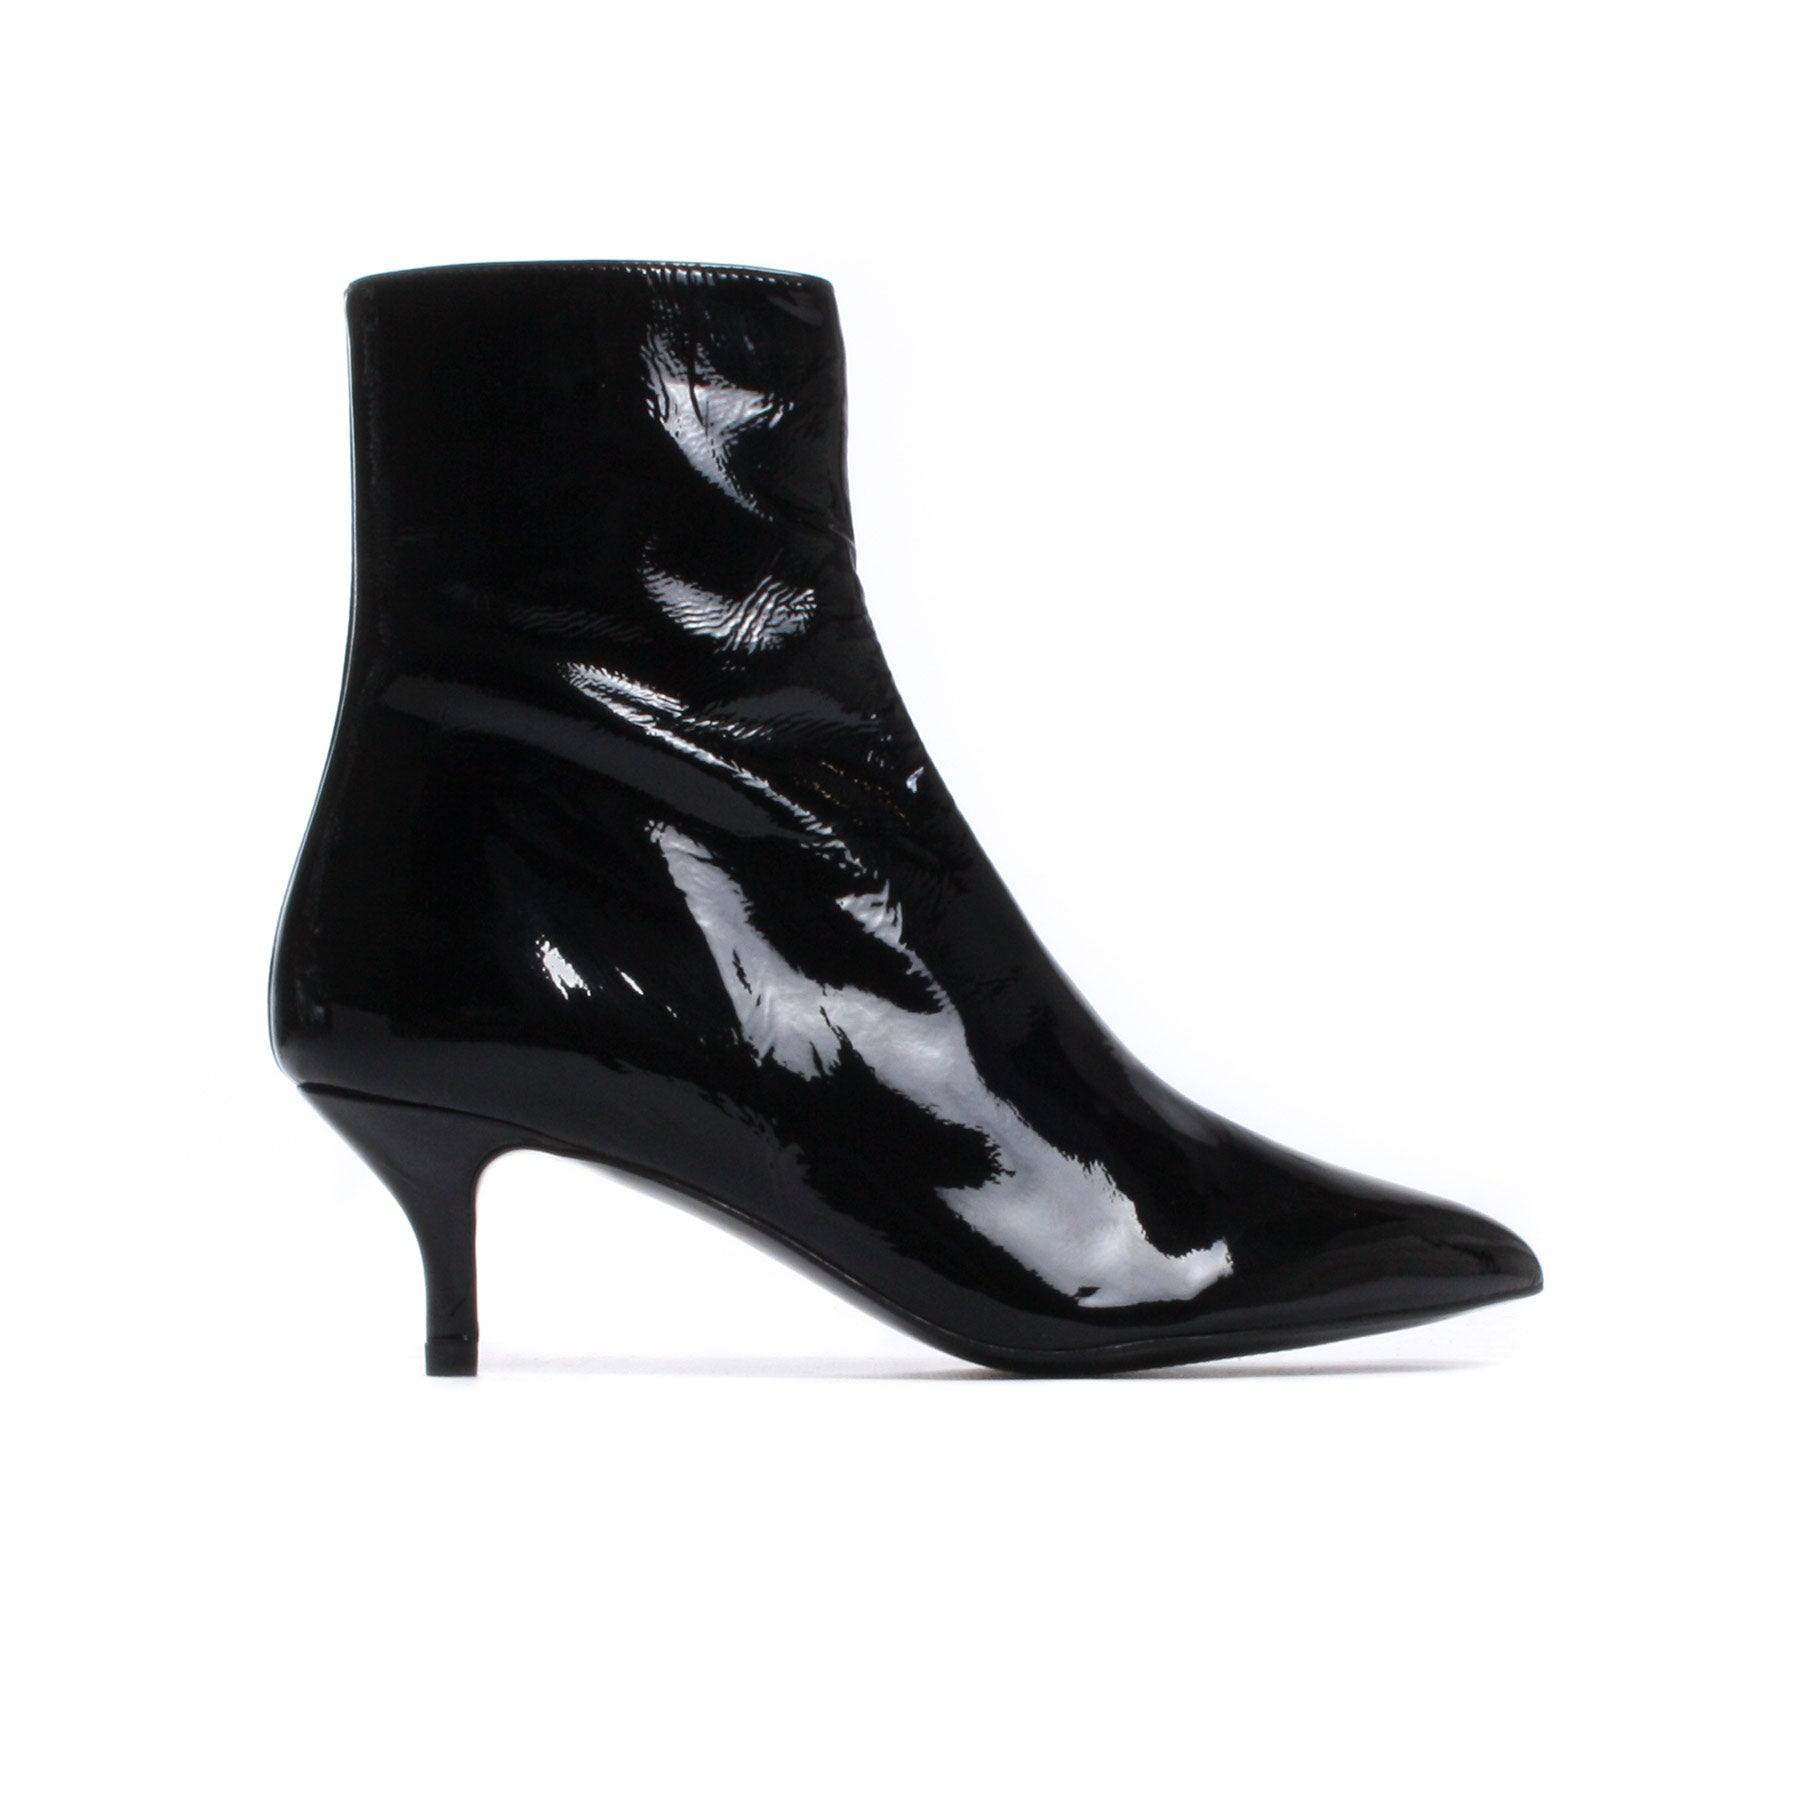 Pipasi Black Patent Leather